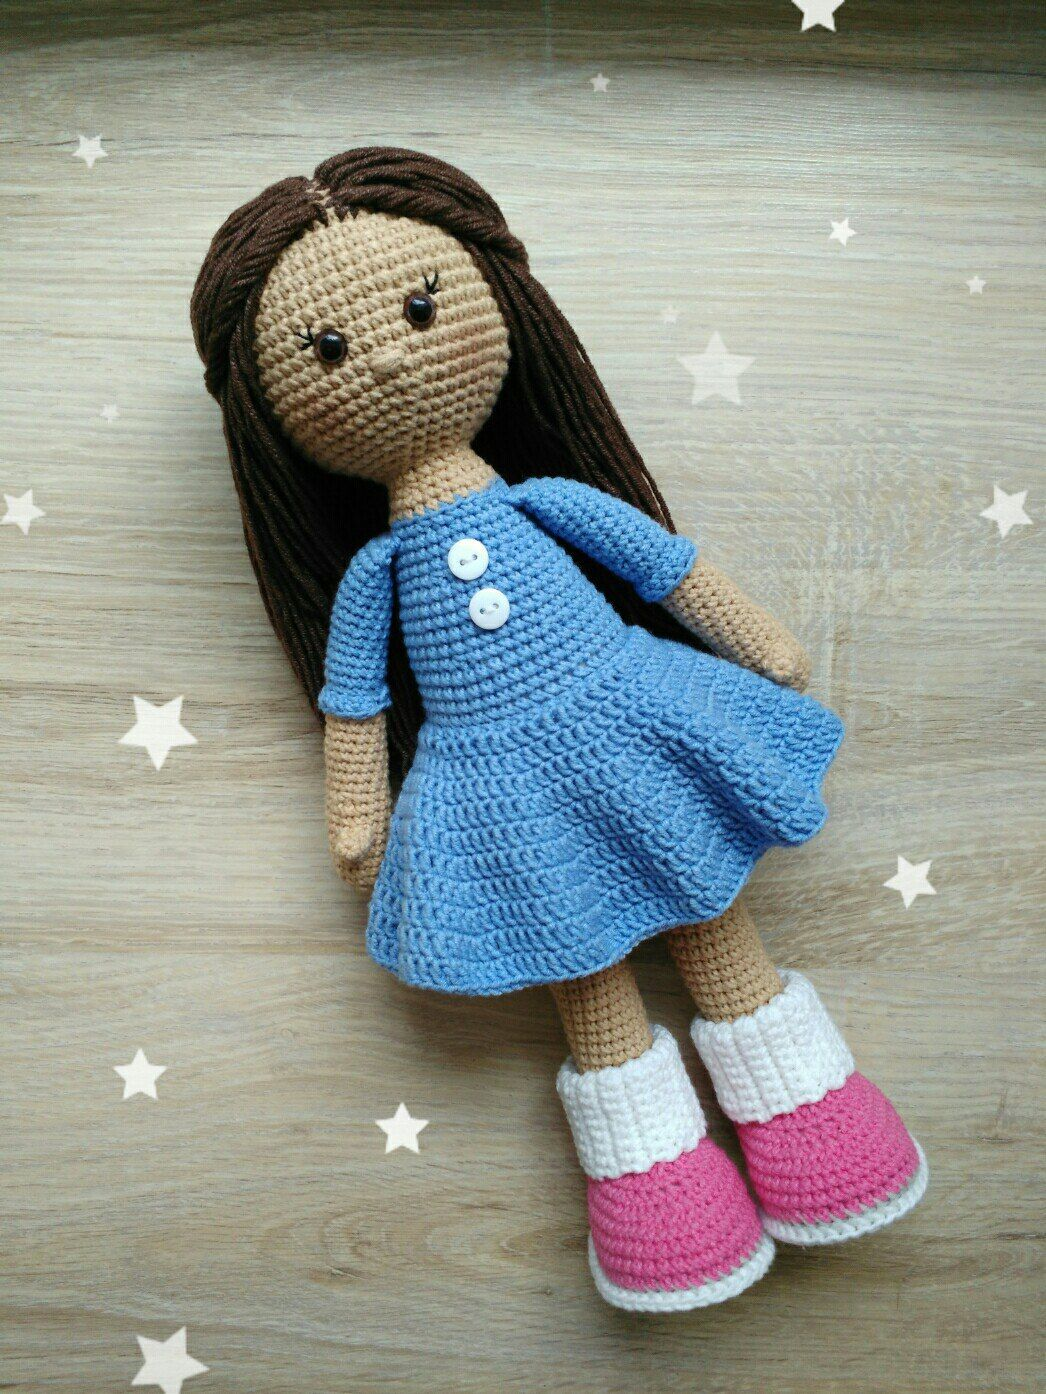 Molly doll crochet pattern #crochetamigurumifreepatterns